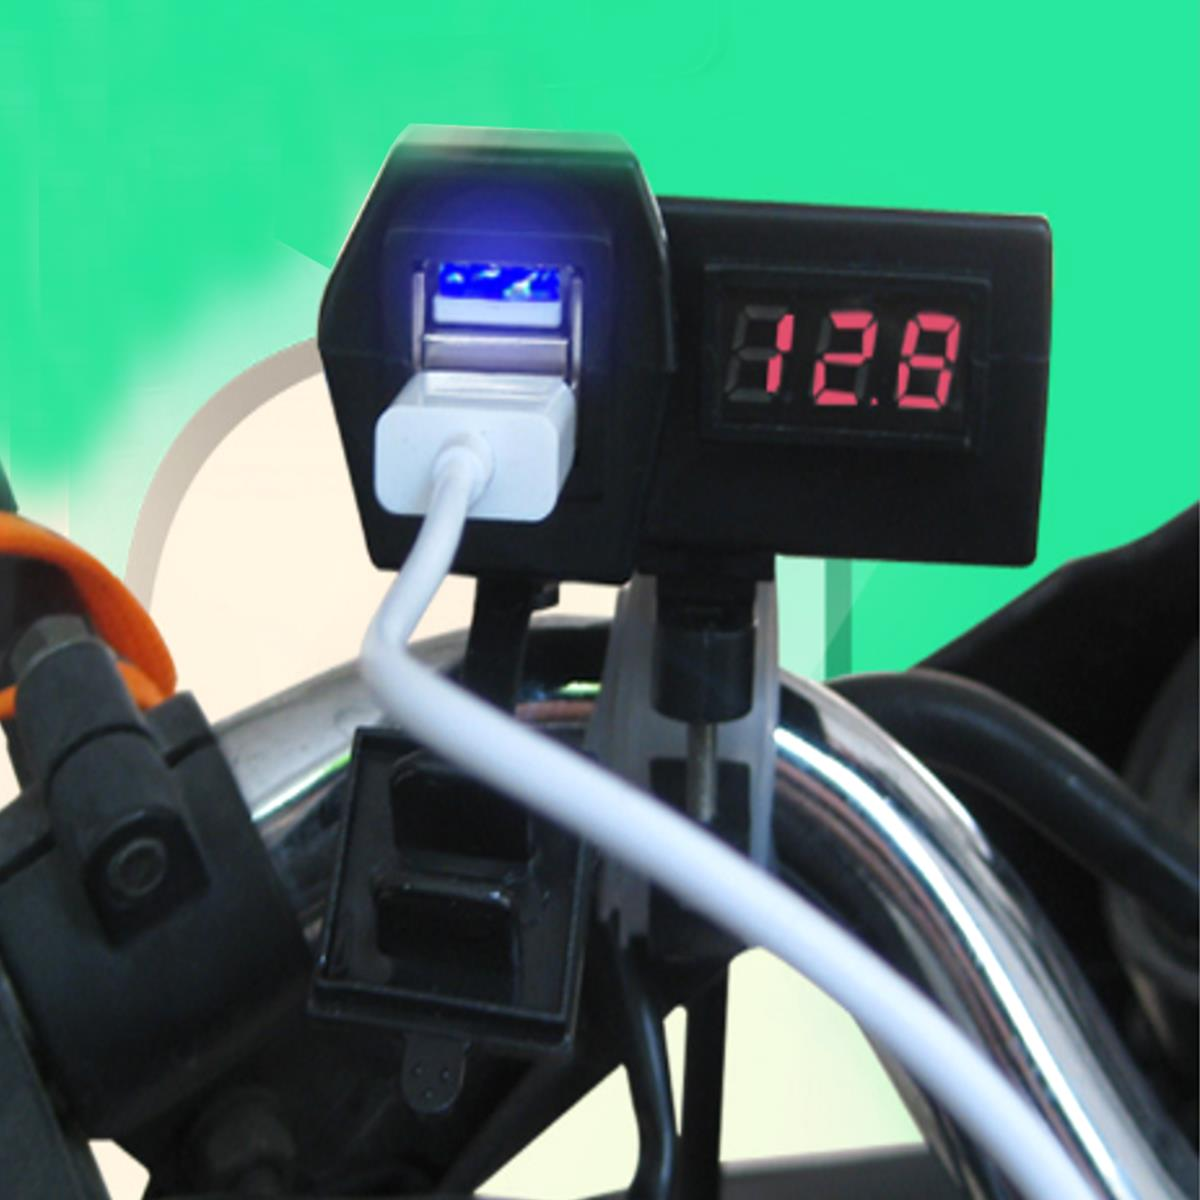 Bakeey 12-24V Motorcycle Motorbike 2 Dual USB Ports Charger Phone Power Socket Adapter GPS Sat